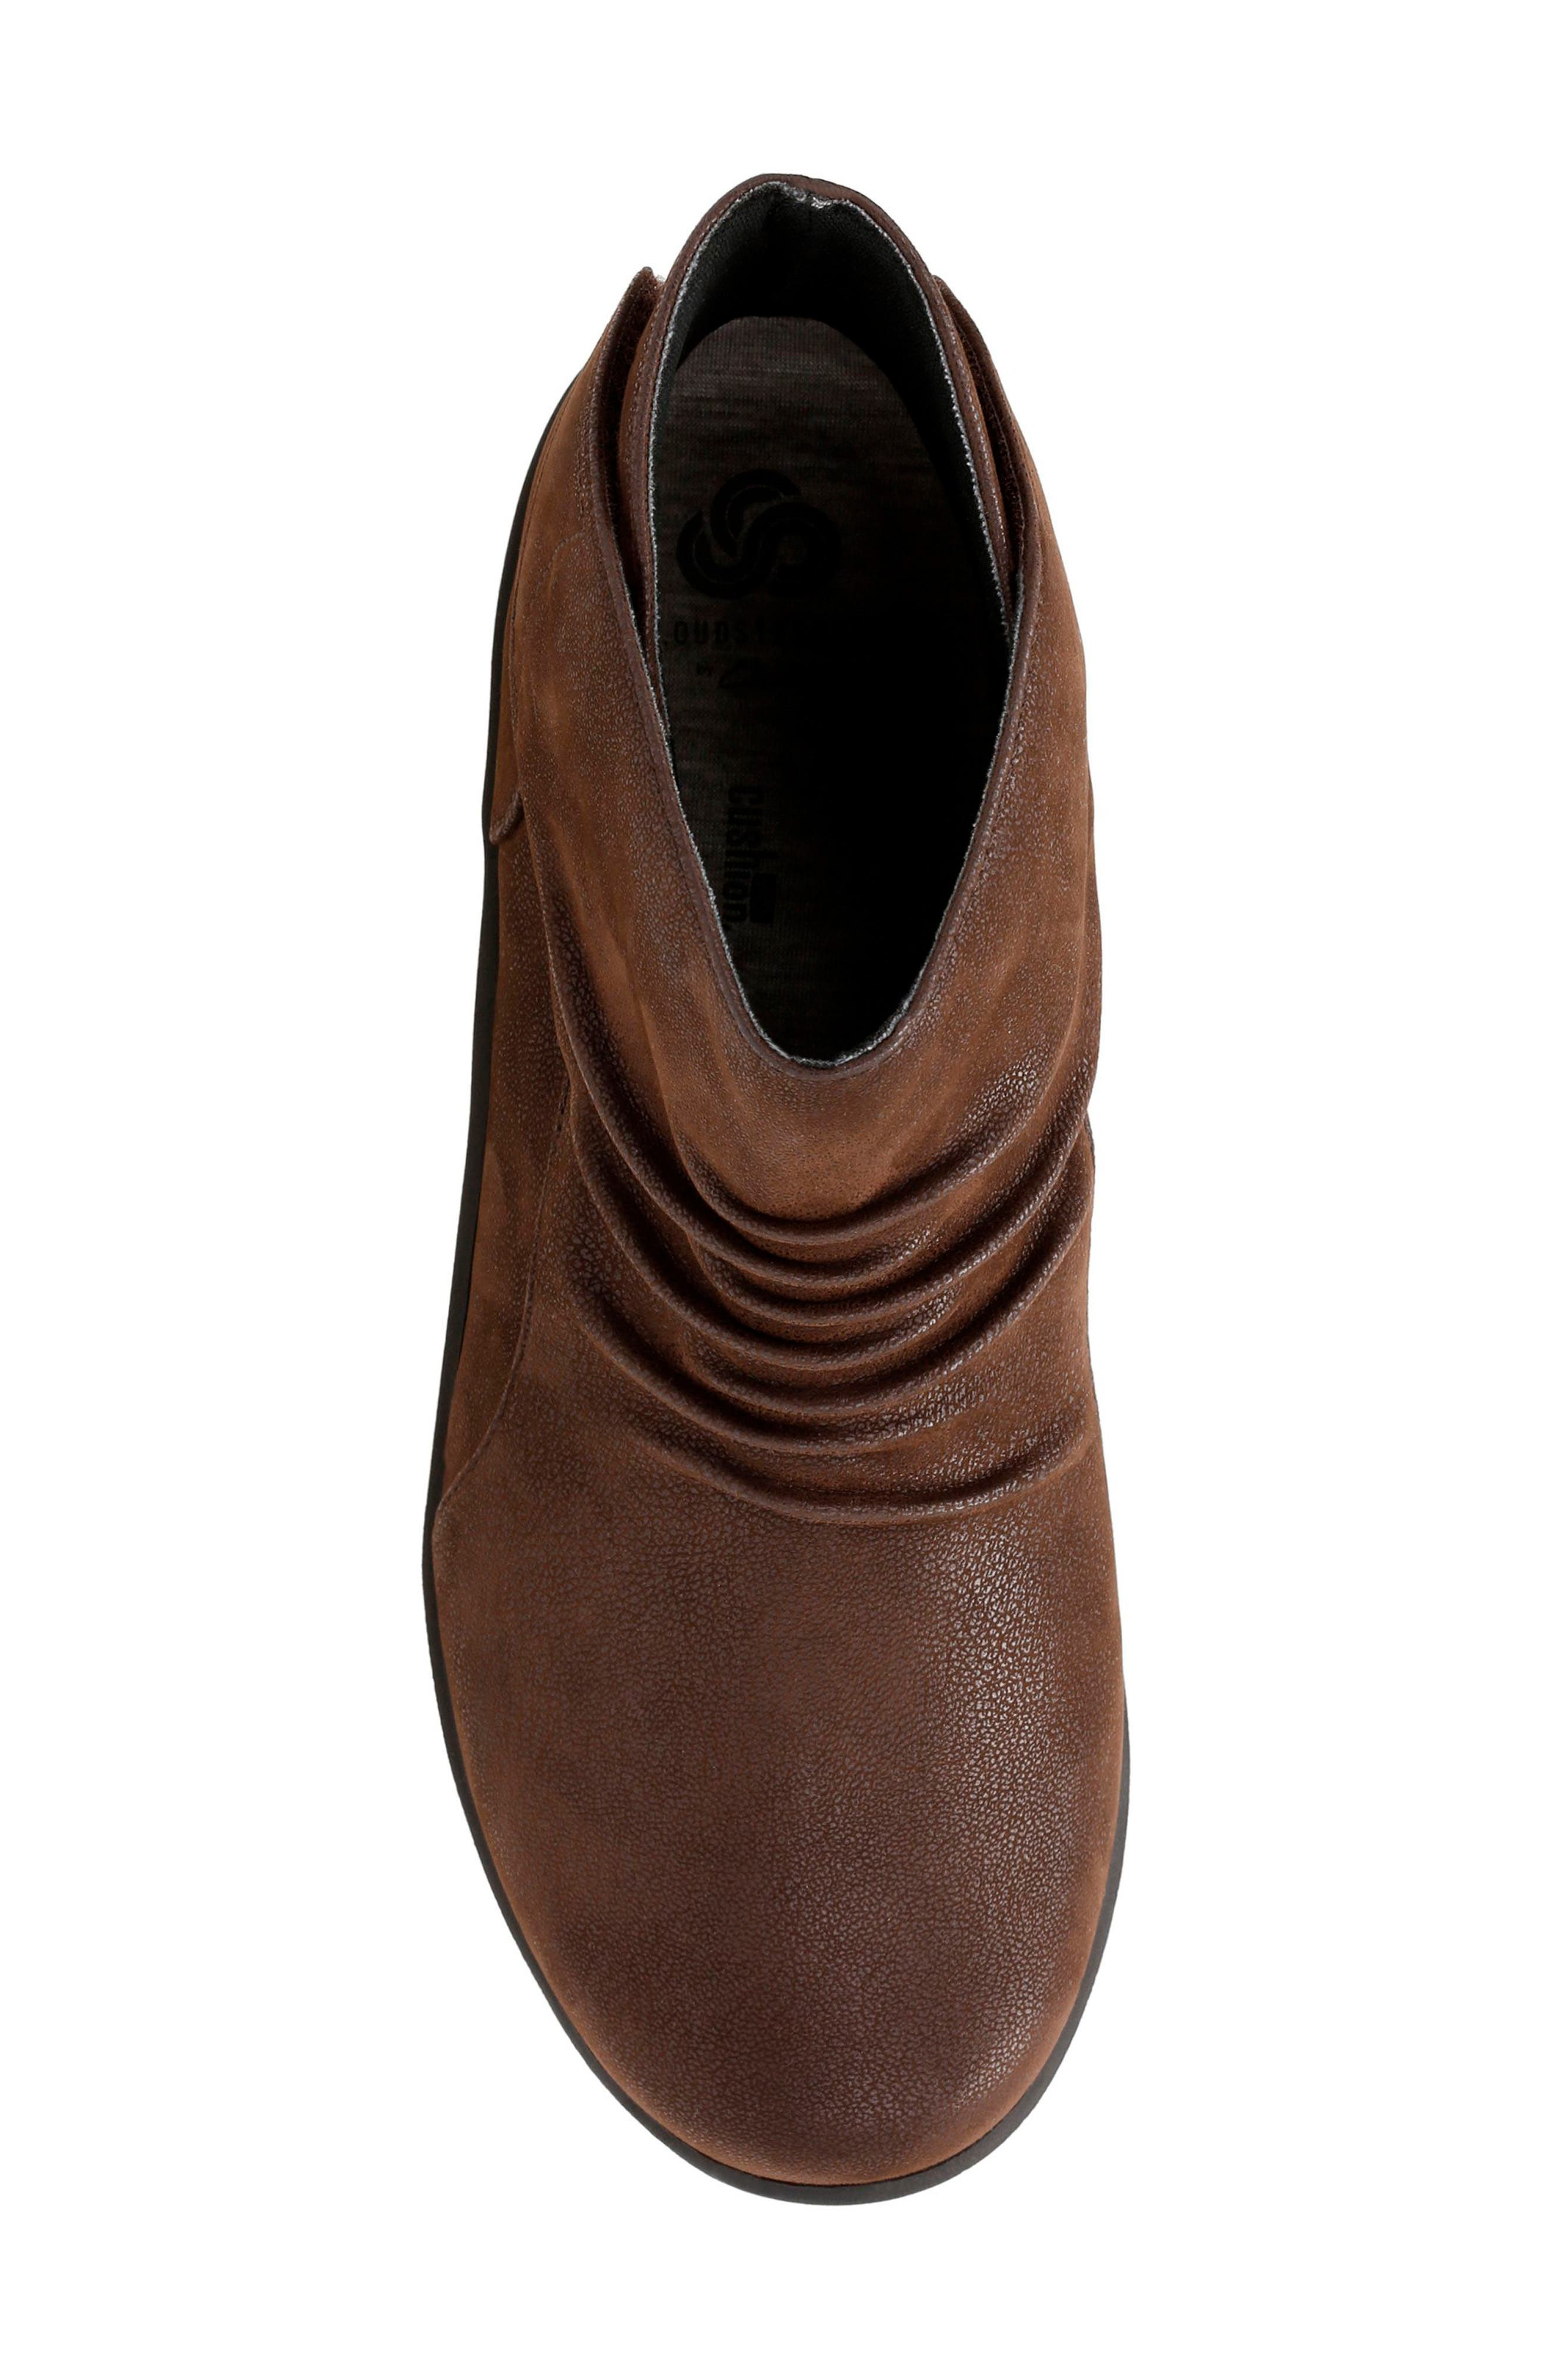 Sillian Sway Boot,                             Alternate thumbnail 5, color,                             BROWN FABRIC